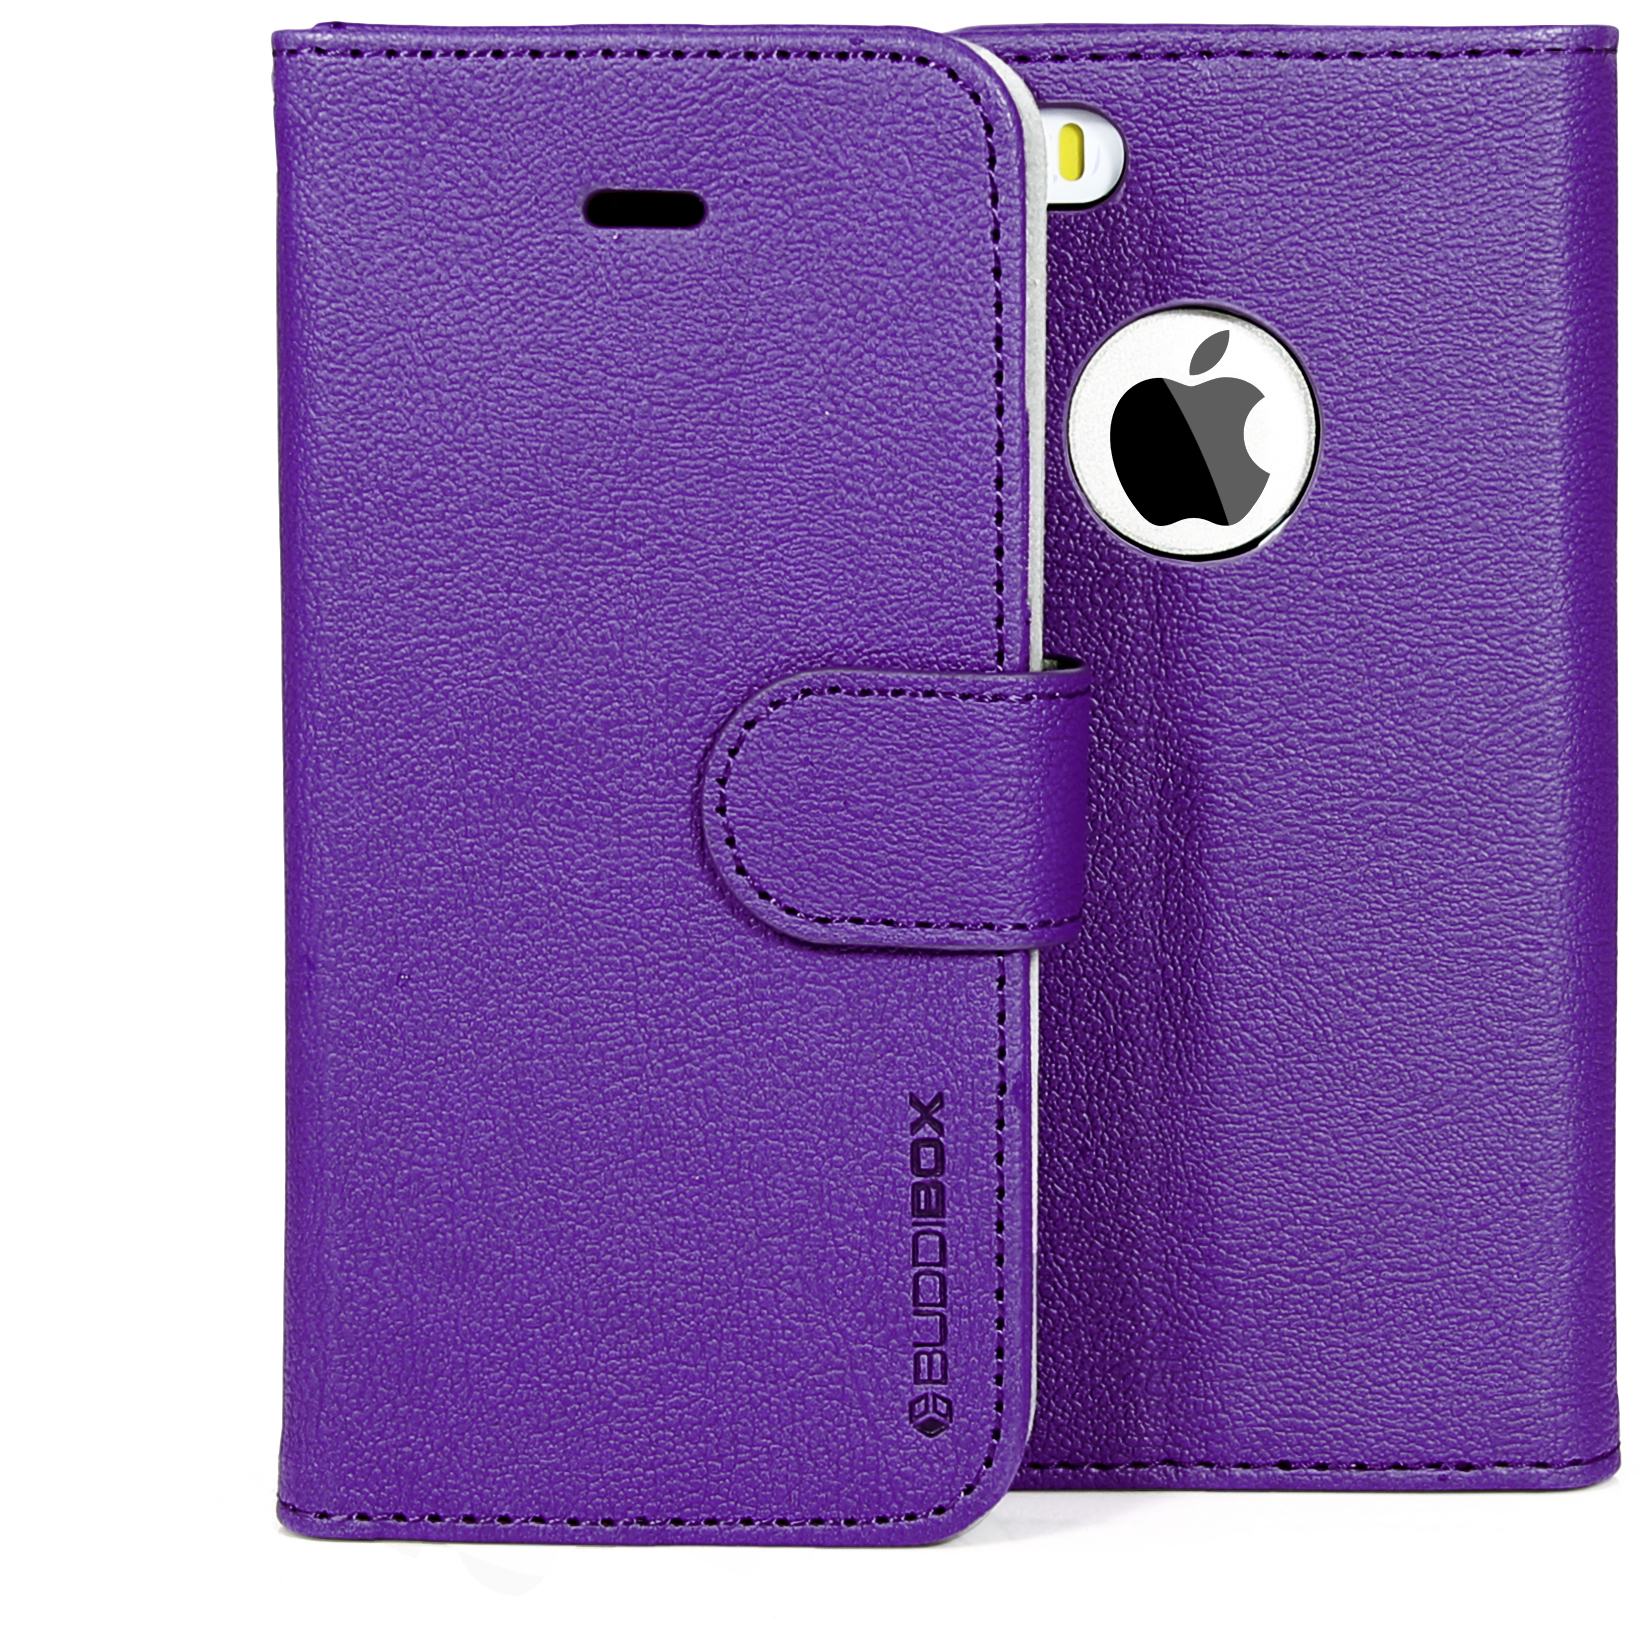 BUDDIBOX iPhone 5S / 5 Case Premium PU Durable Leather Wallet Folio Protective Cover Case for Apple iPhone 5 / 5S